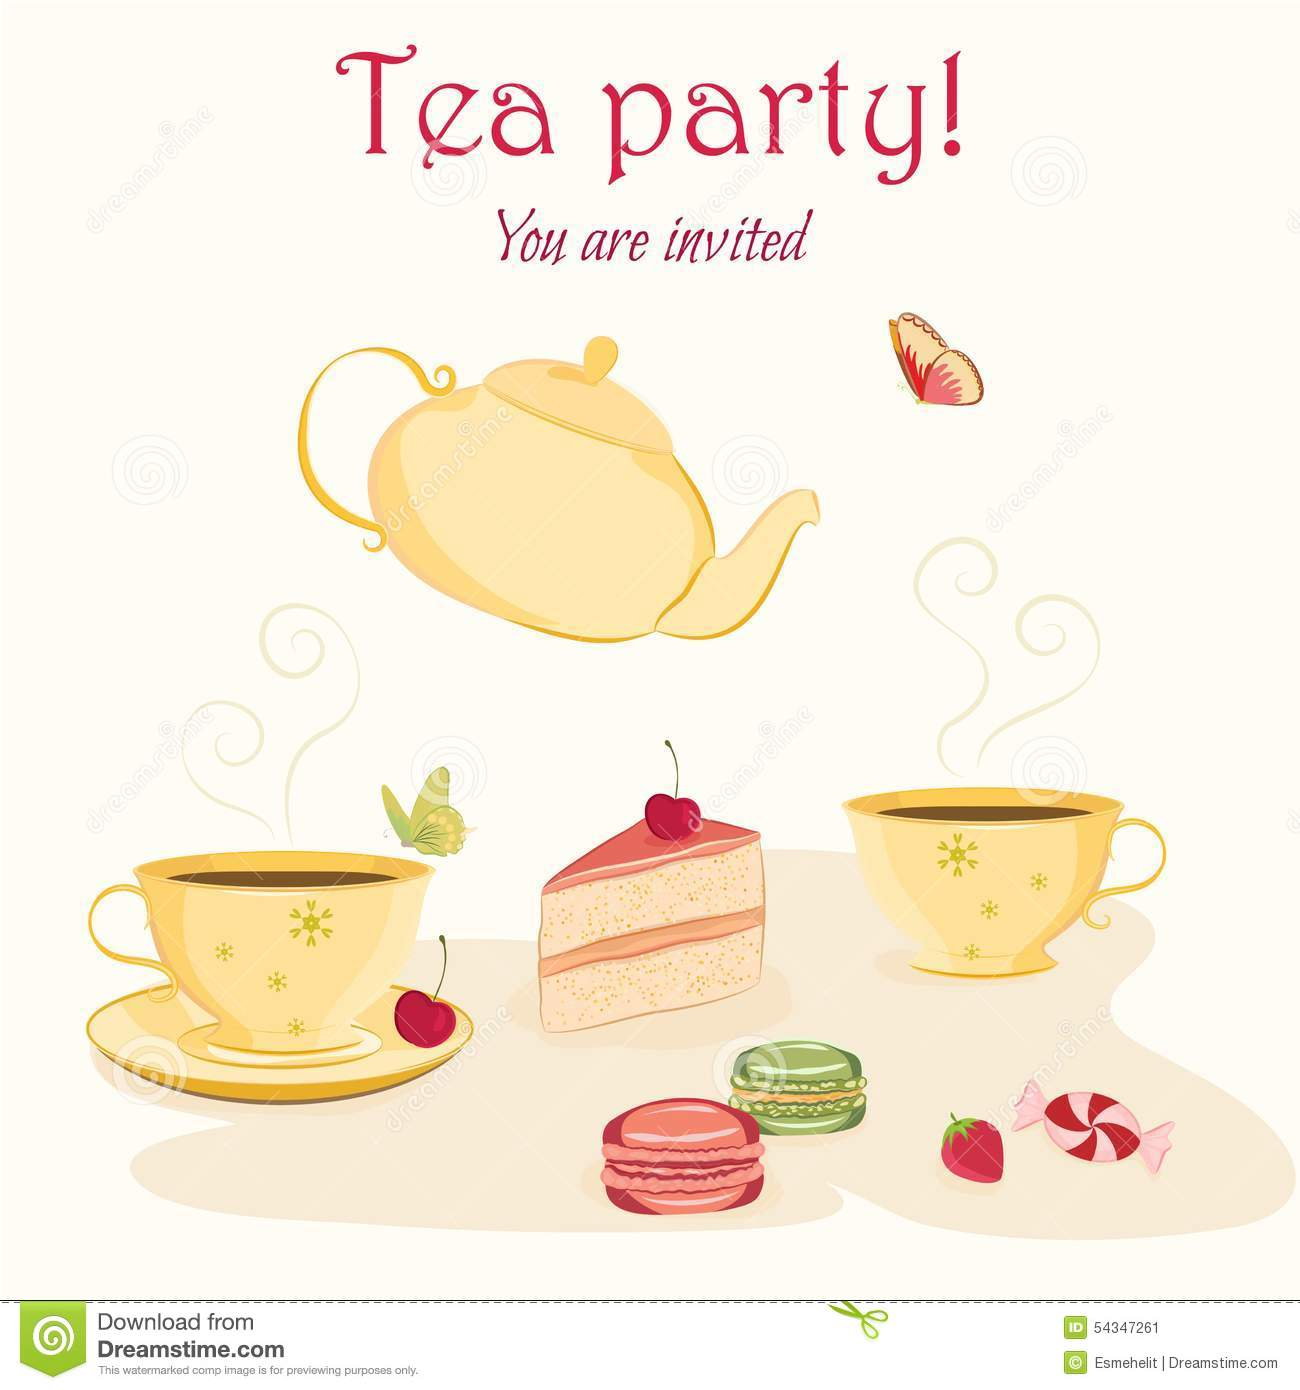 Elegant Tea Party Invitation Template With Teacups Stock Vector ...